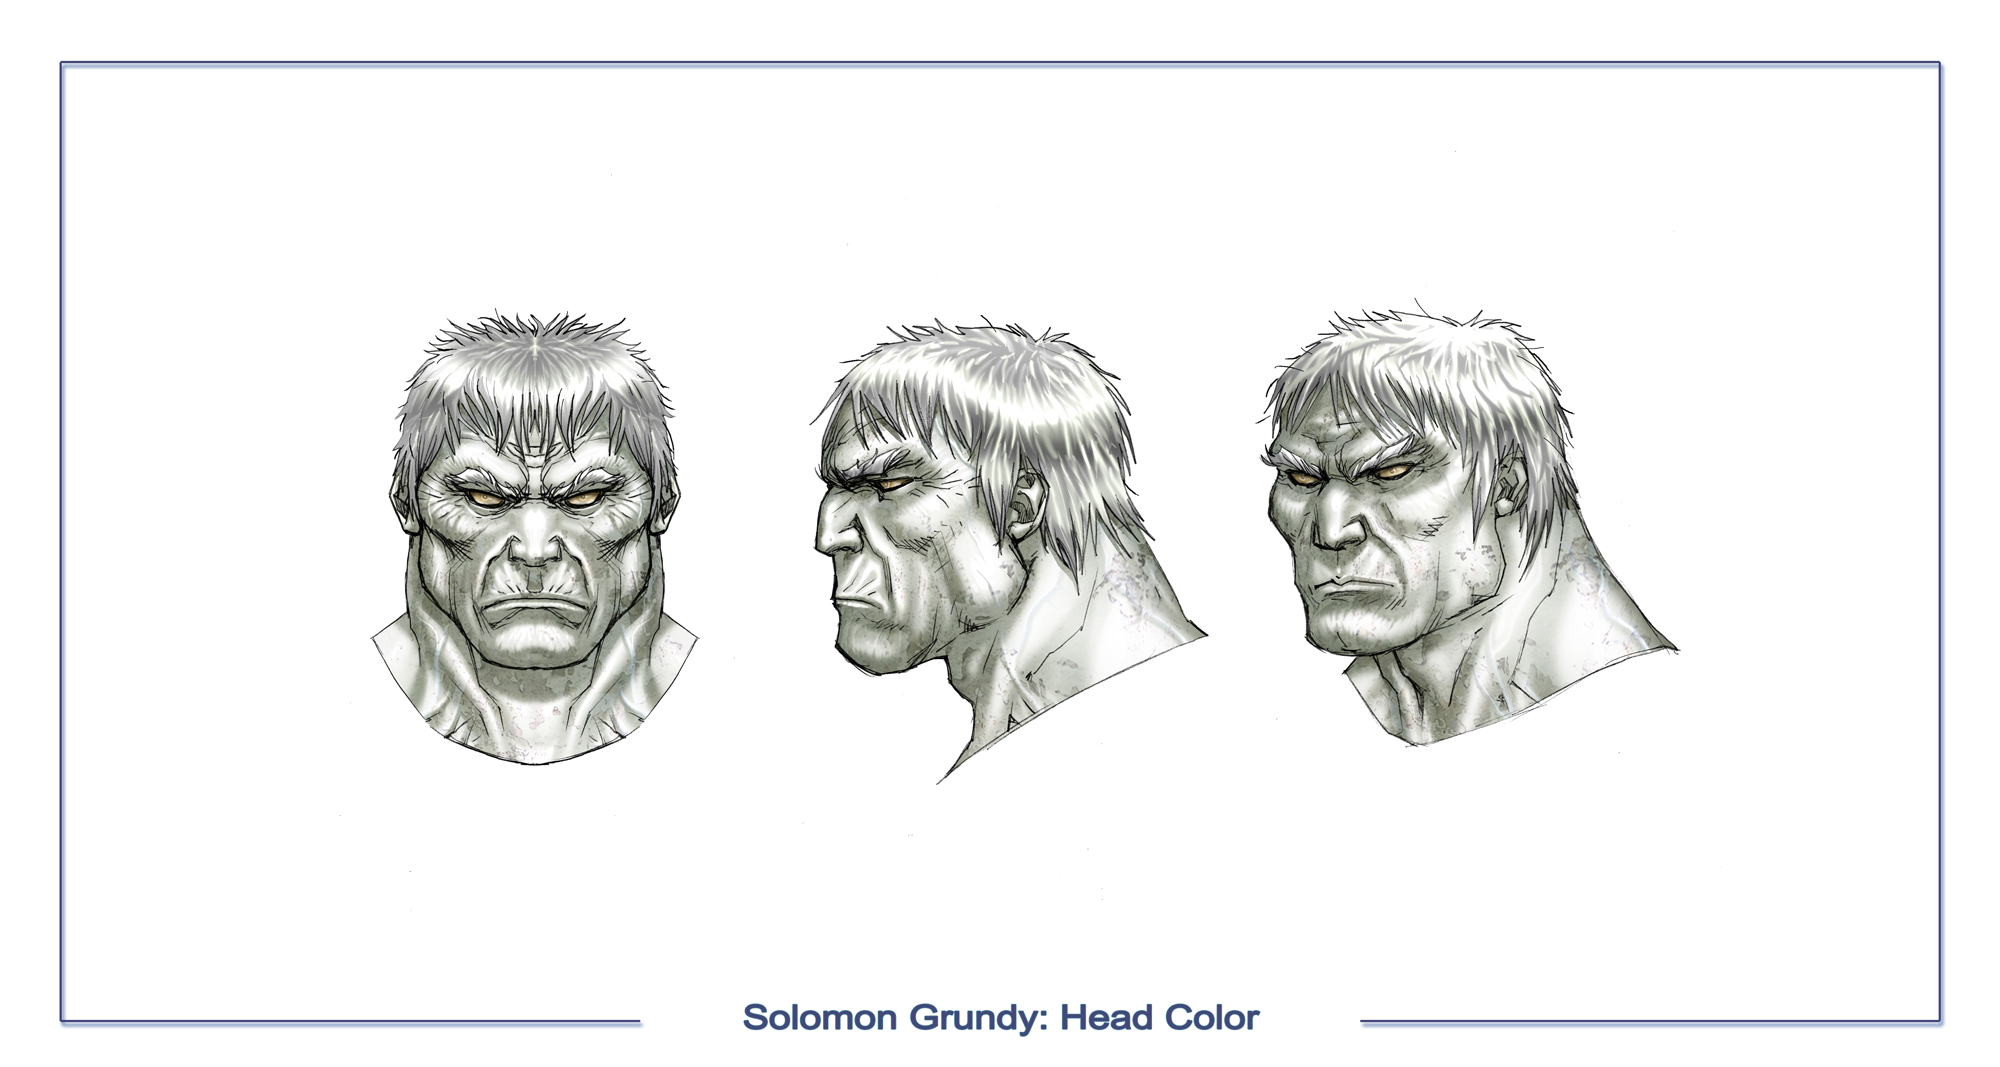 solomon grundy coloring pages - photo#36